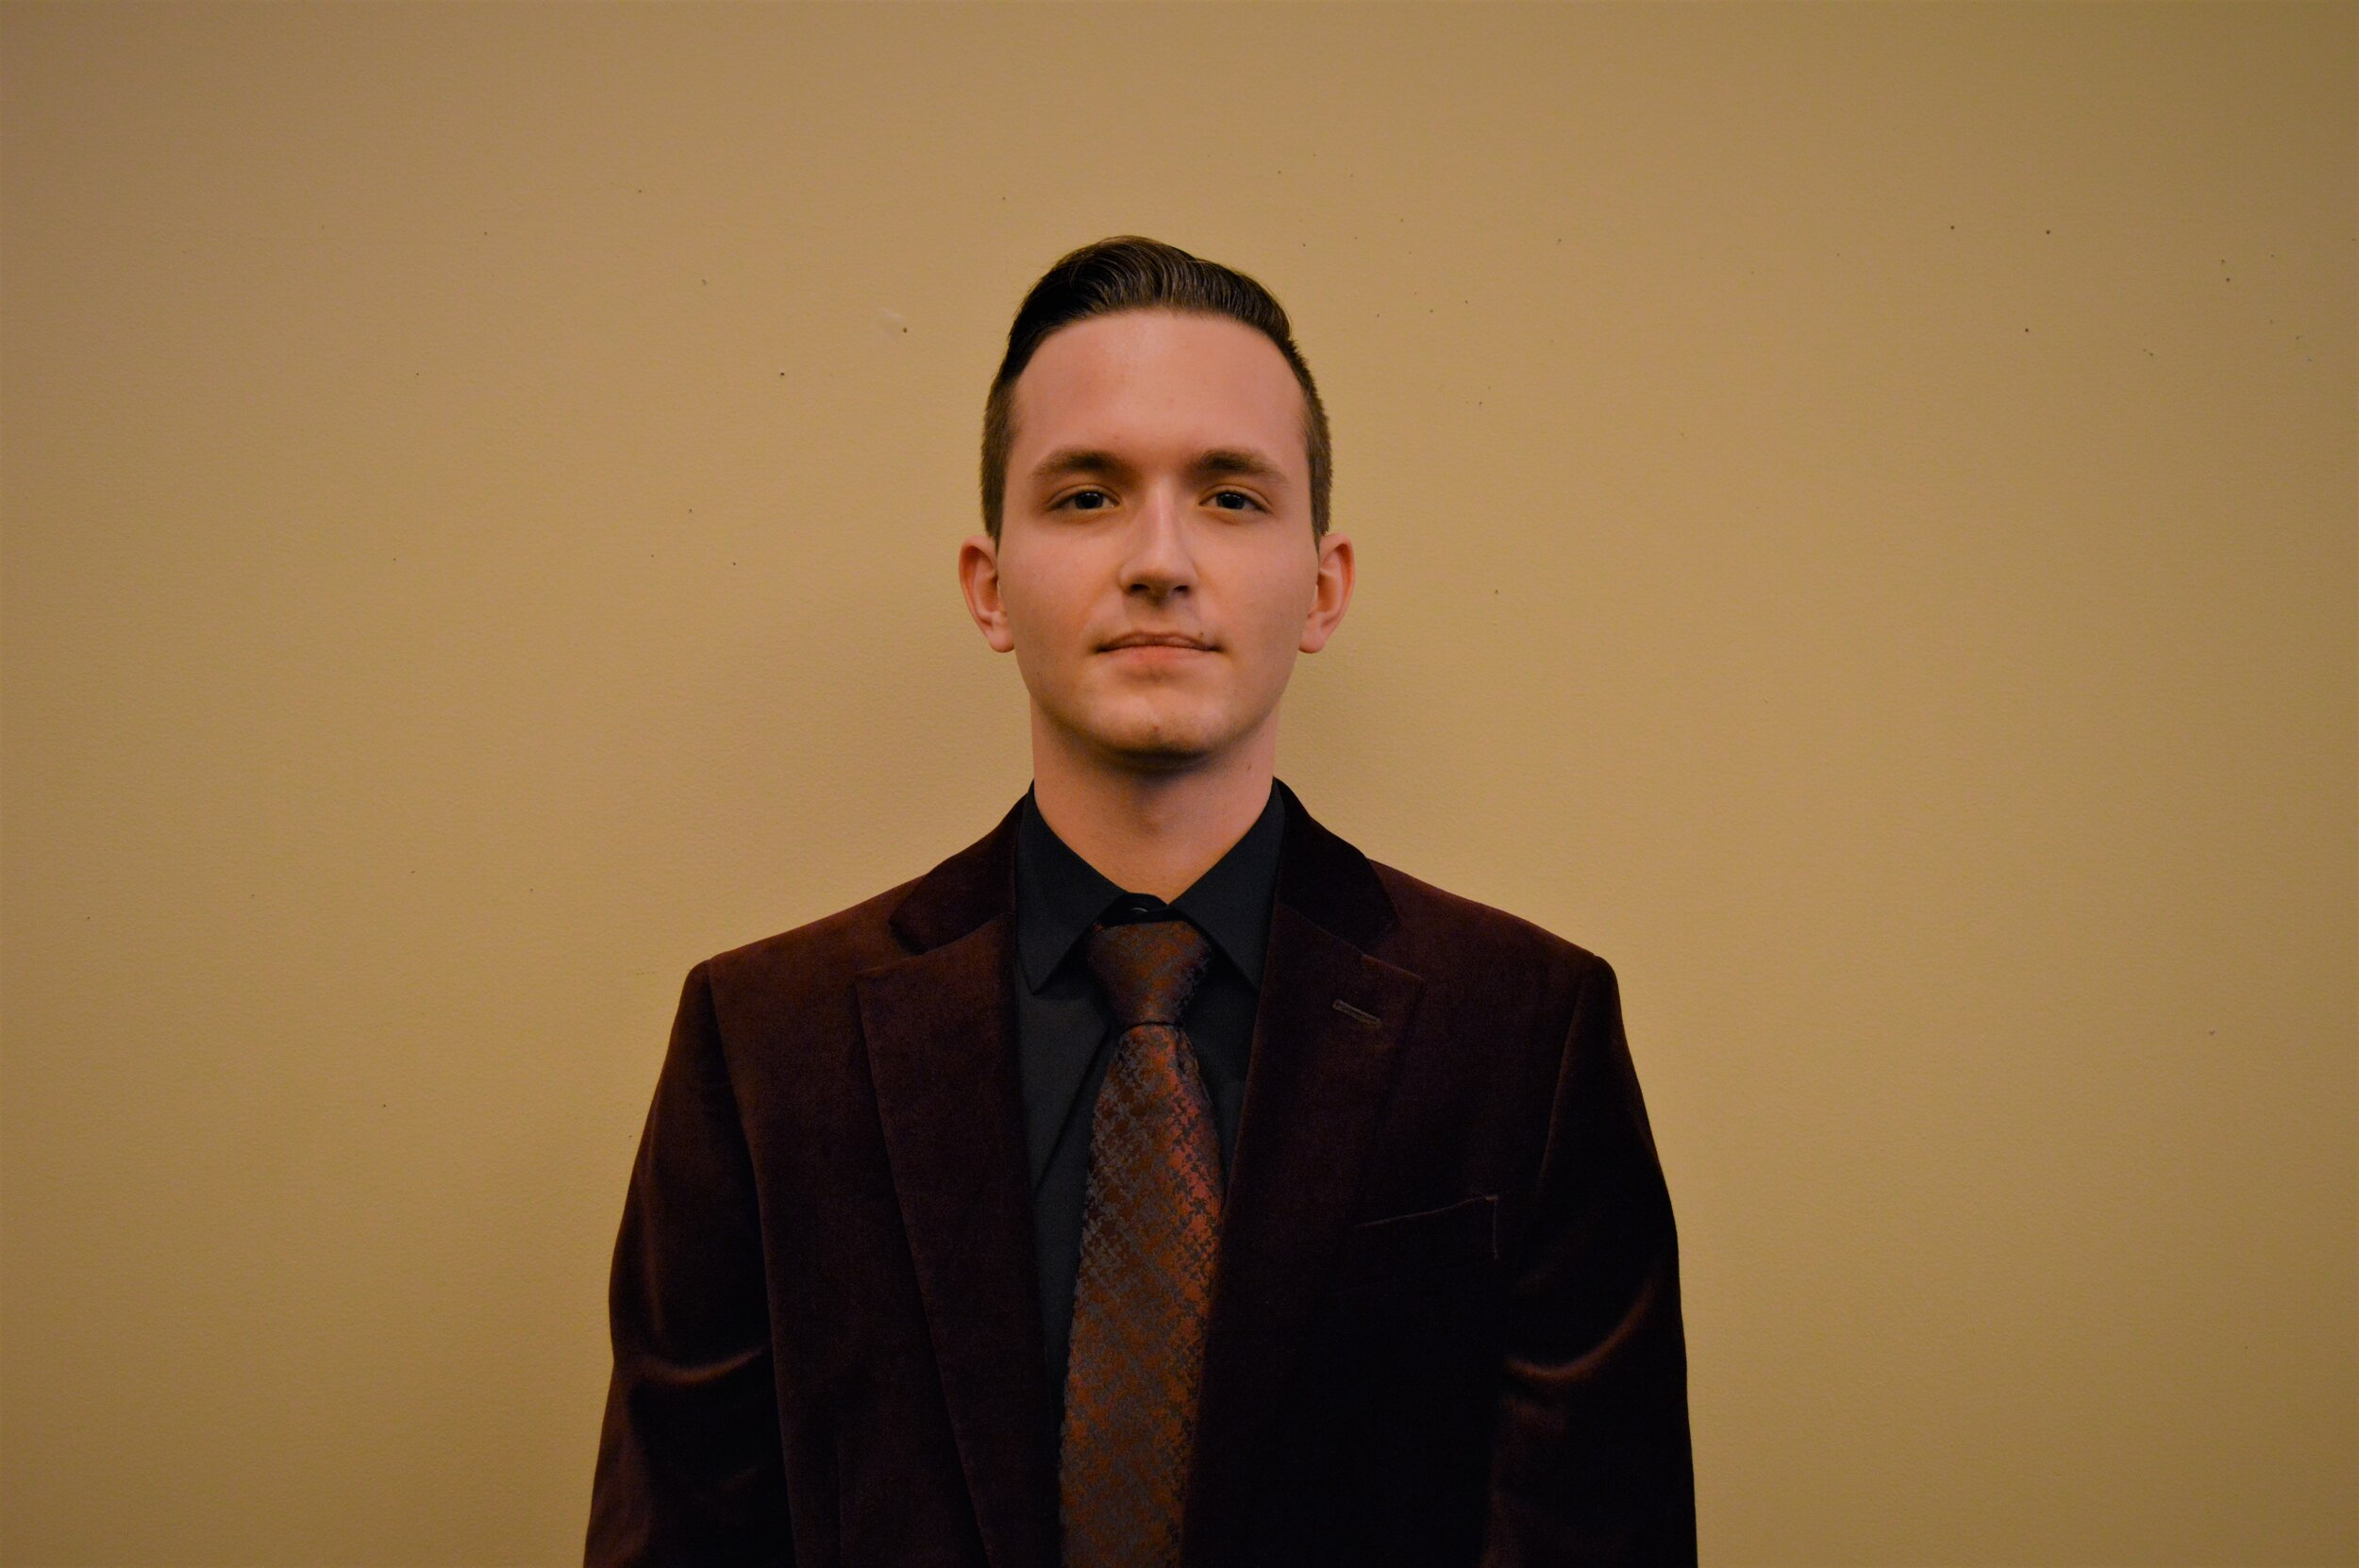 Brian S Baker - Class and Major: Finance '21UTSG Position: Appointed SenatorEmail: Brian.Baker@rockets.utoledo.eduBiography: I plan to work for a small startup business out of collegeUTSG Committees: Campus CultureCampus Involvement: Pi Kappa Phi, PRISMOn Campus Goals: I would like to see more events between different organizations to foster a stronger on campus community bondFavorite Color: Blue